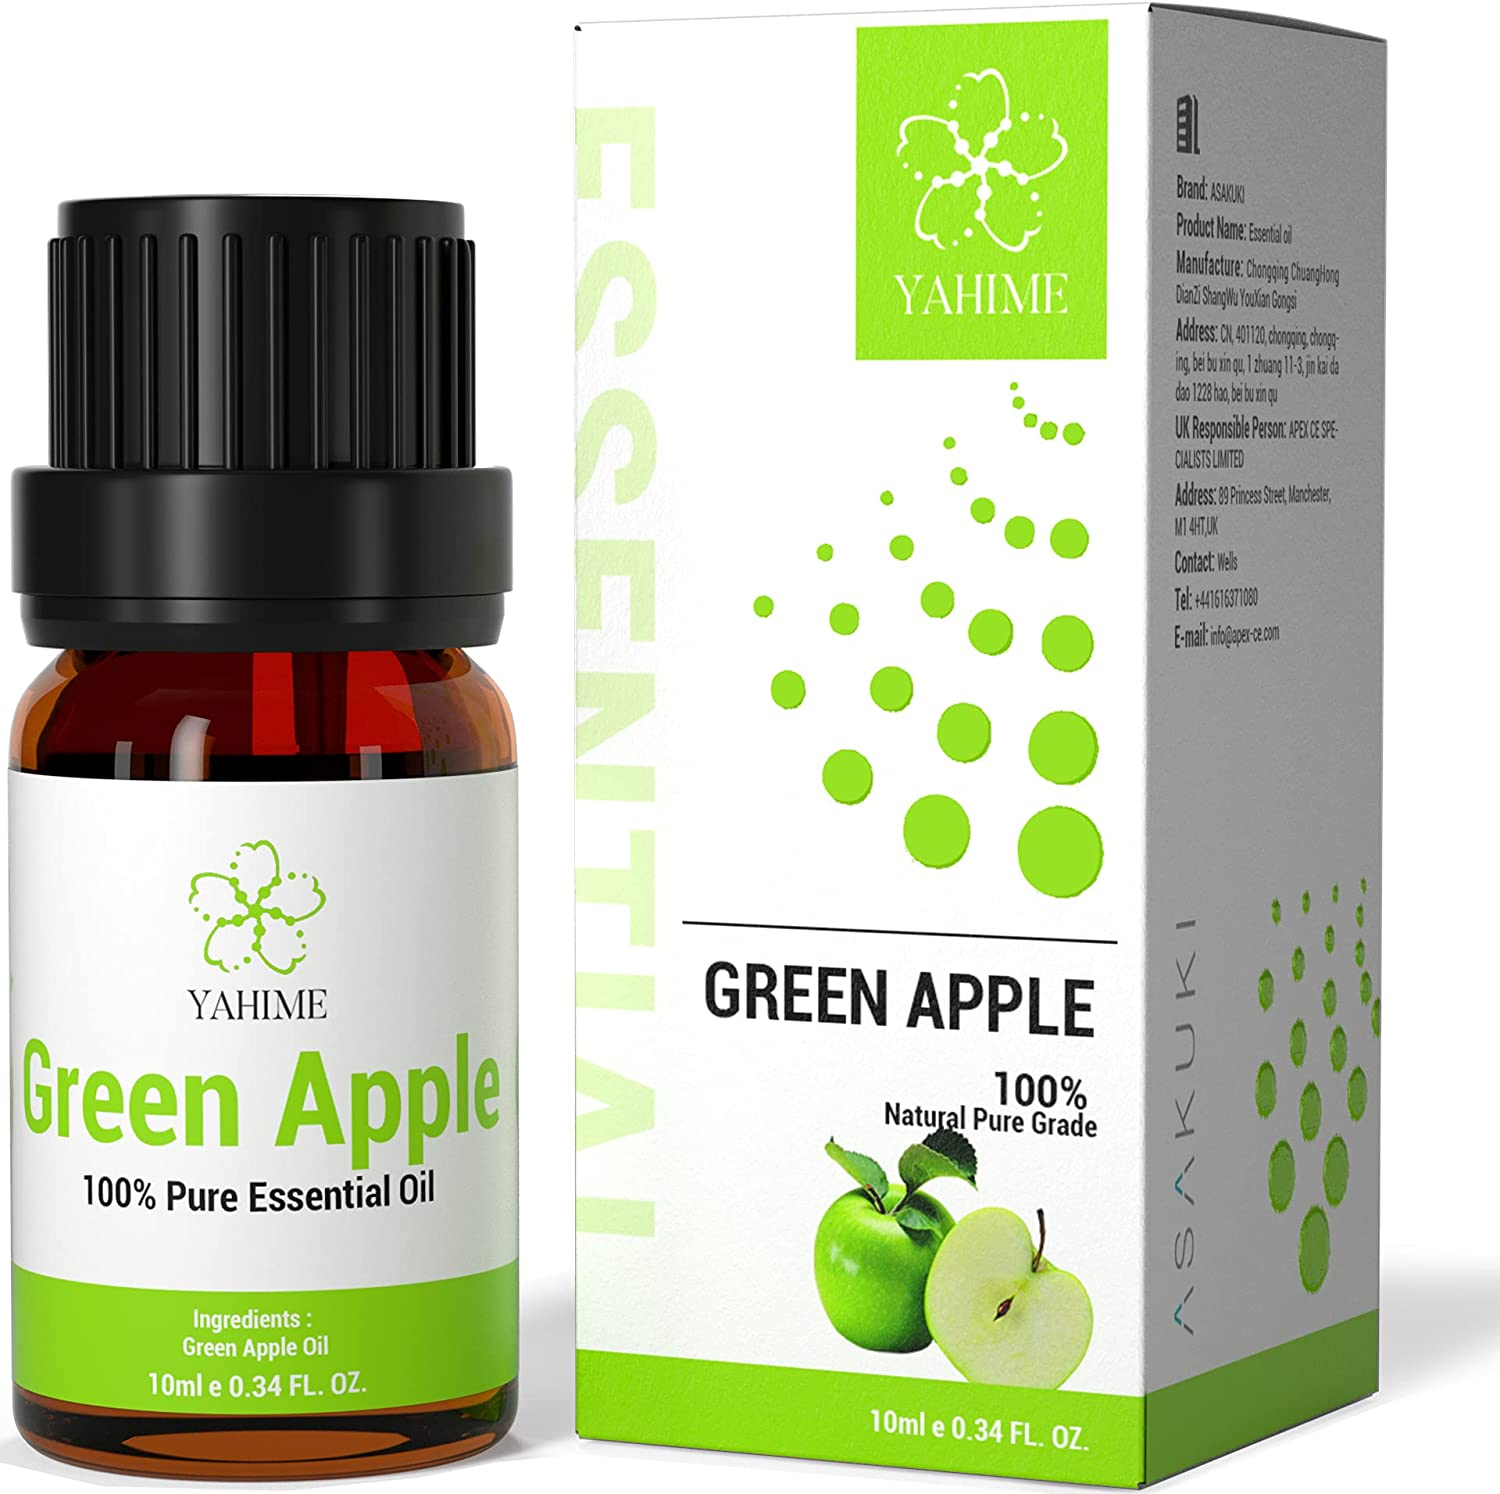 ASAKUKI Green Apple Essential Oils for Diffusers, Candle&Soap Making-100% Natural Aromatherapy Oil for Skin Care, Stress Relief&Mind Calming with Fruit Scent-10ml YAHIME Infinite